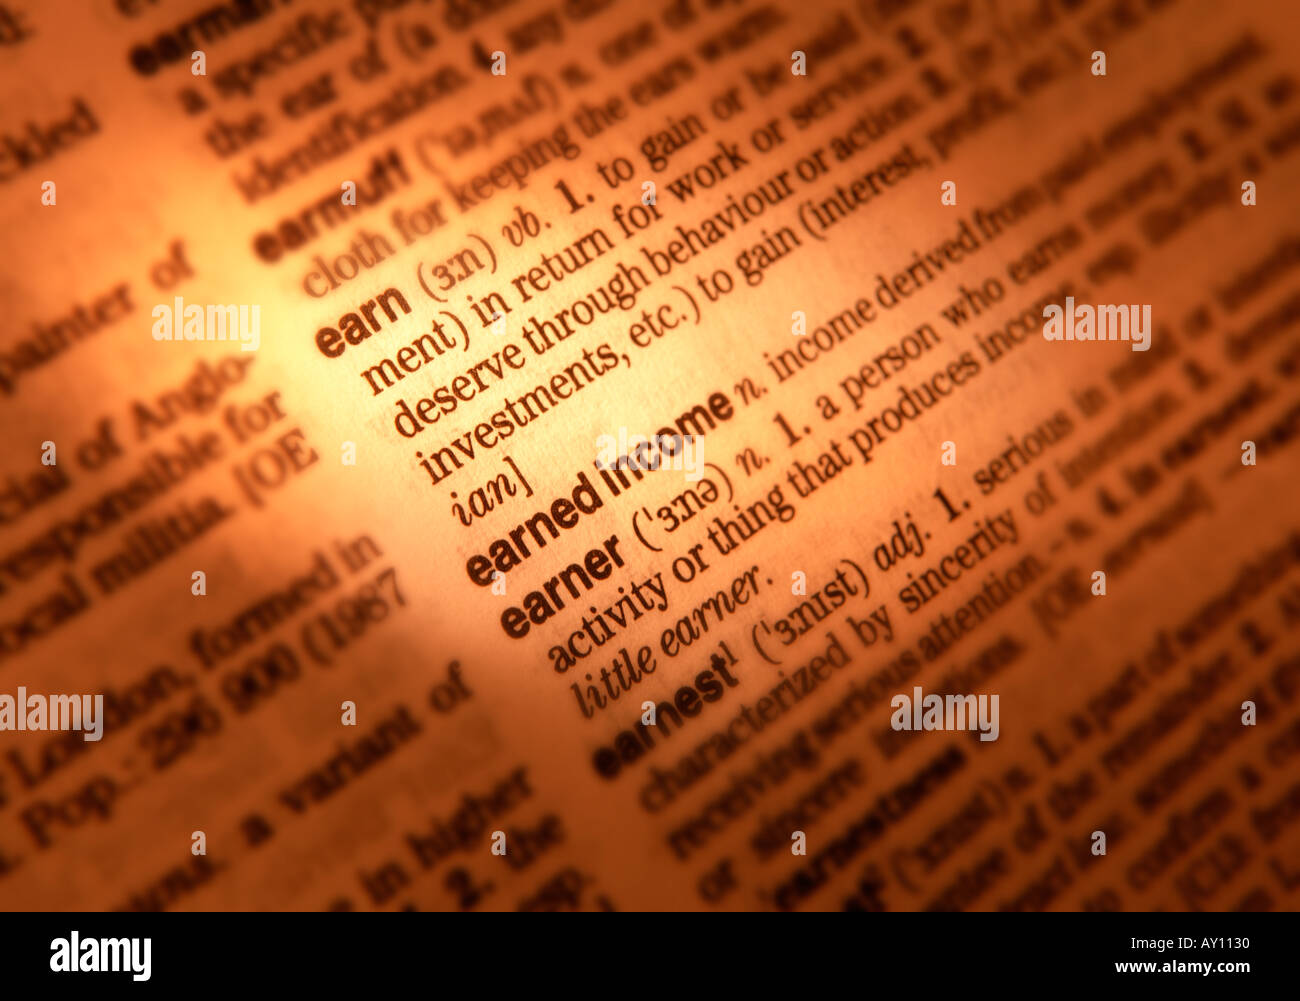 CLOSE UP OF DICTIONARY PAGE SHOWING DEFINITION OF THE WORD EARN INCOME - Stock Image